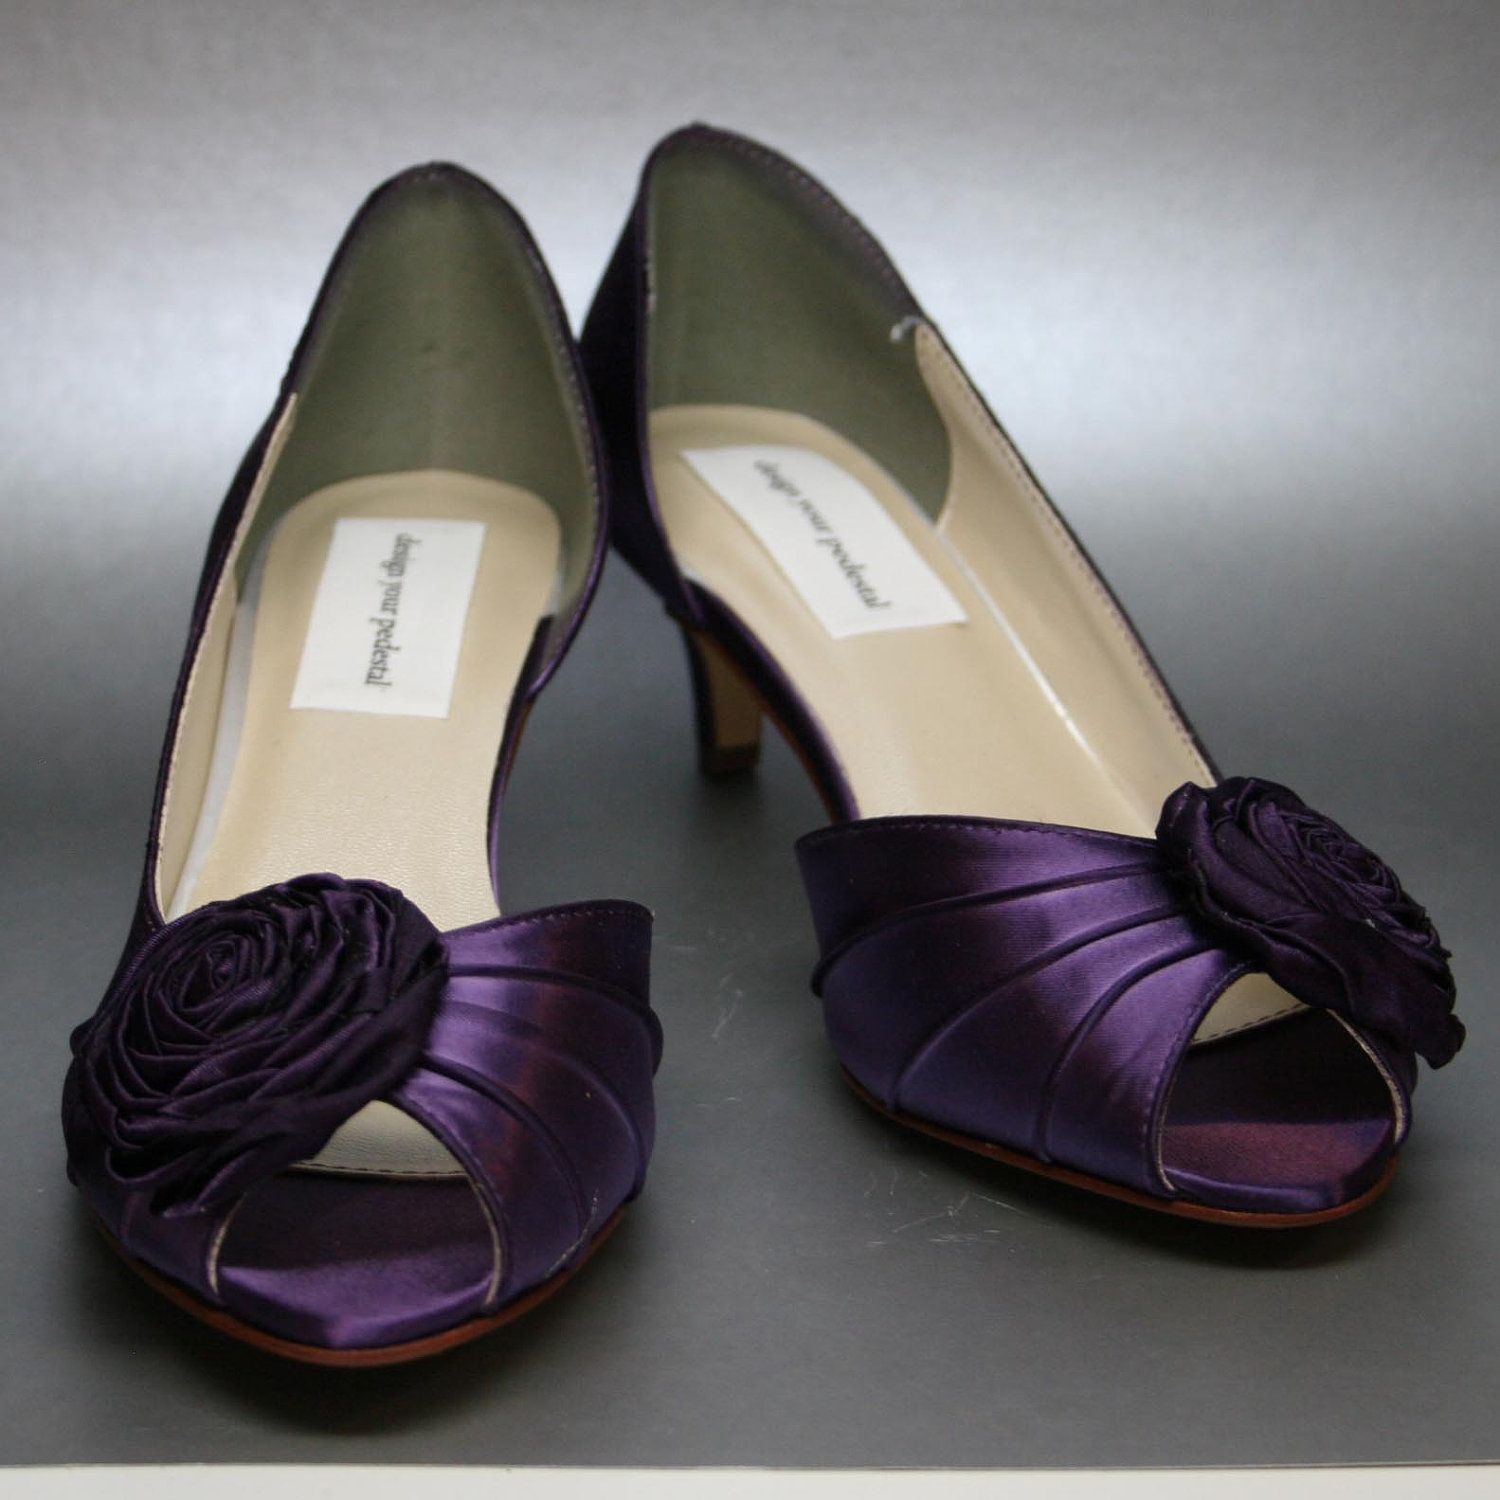 Blush Wedding Shoes D Orsay P Toes With Handmade Rosette On Toe And Matching Satin Ons